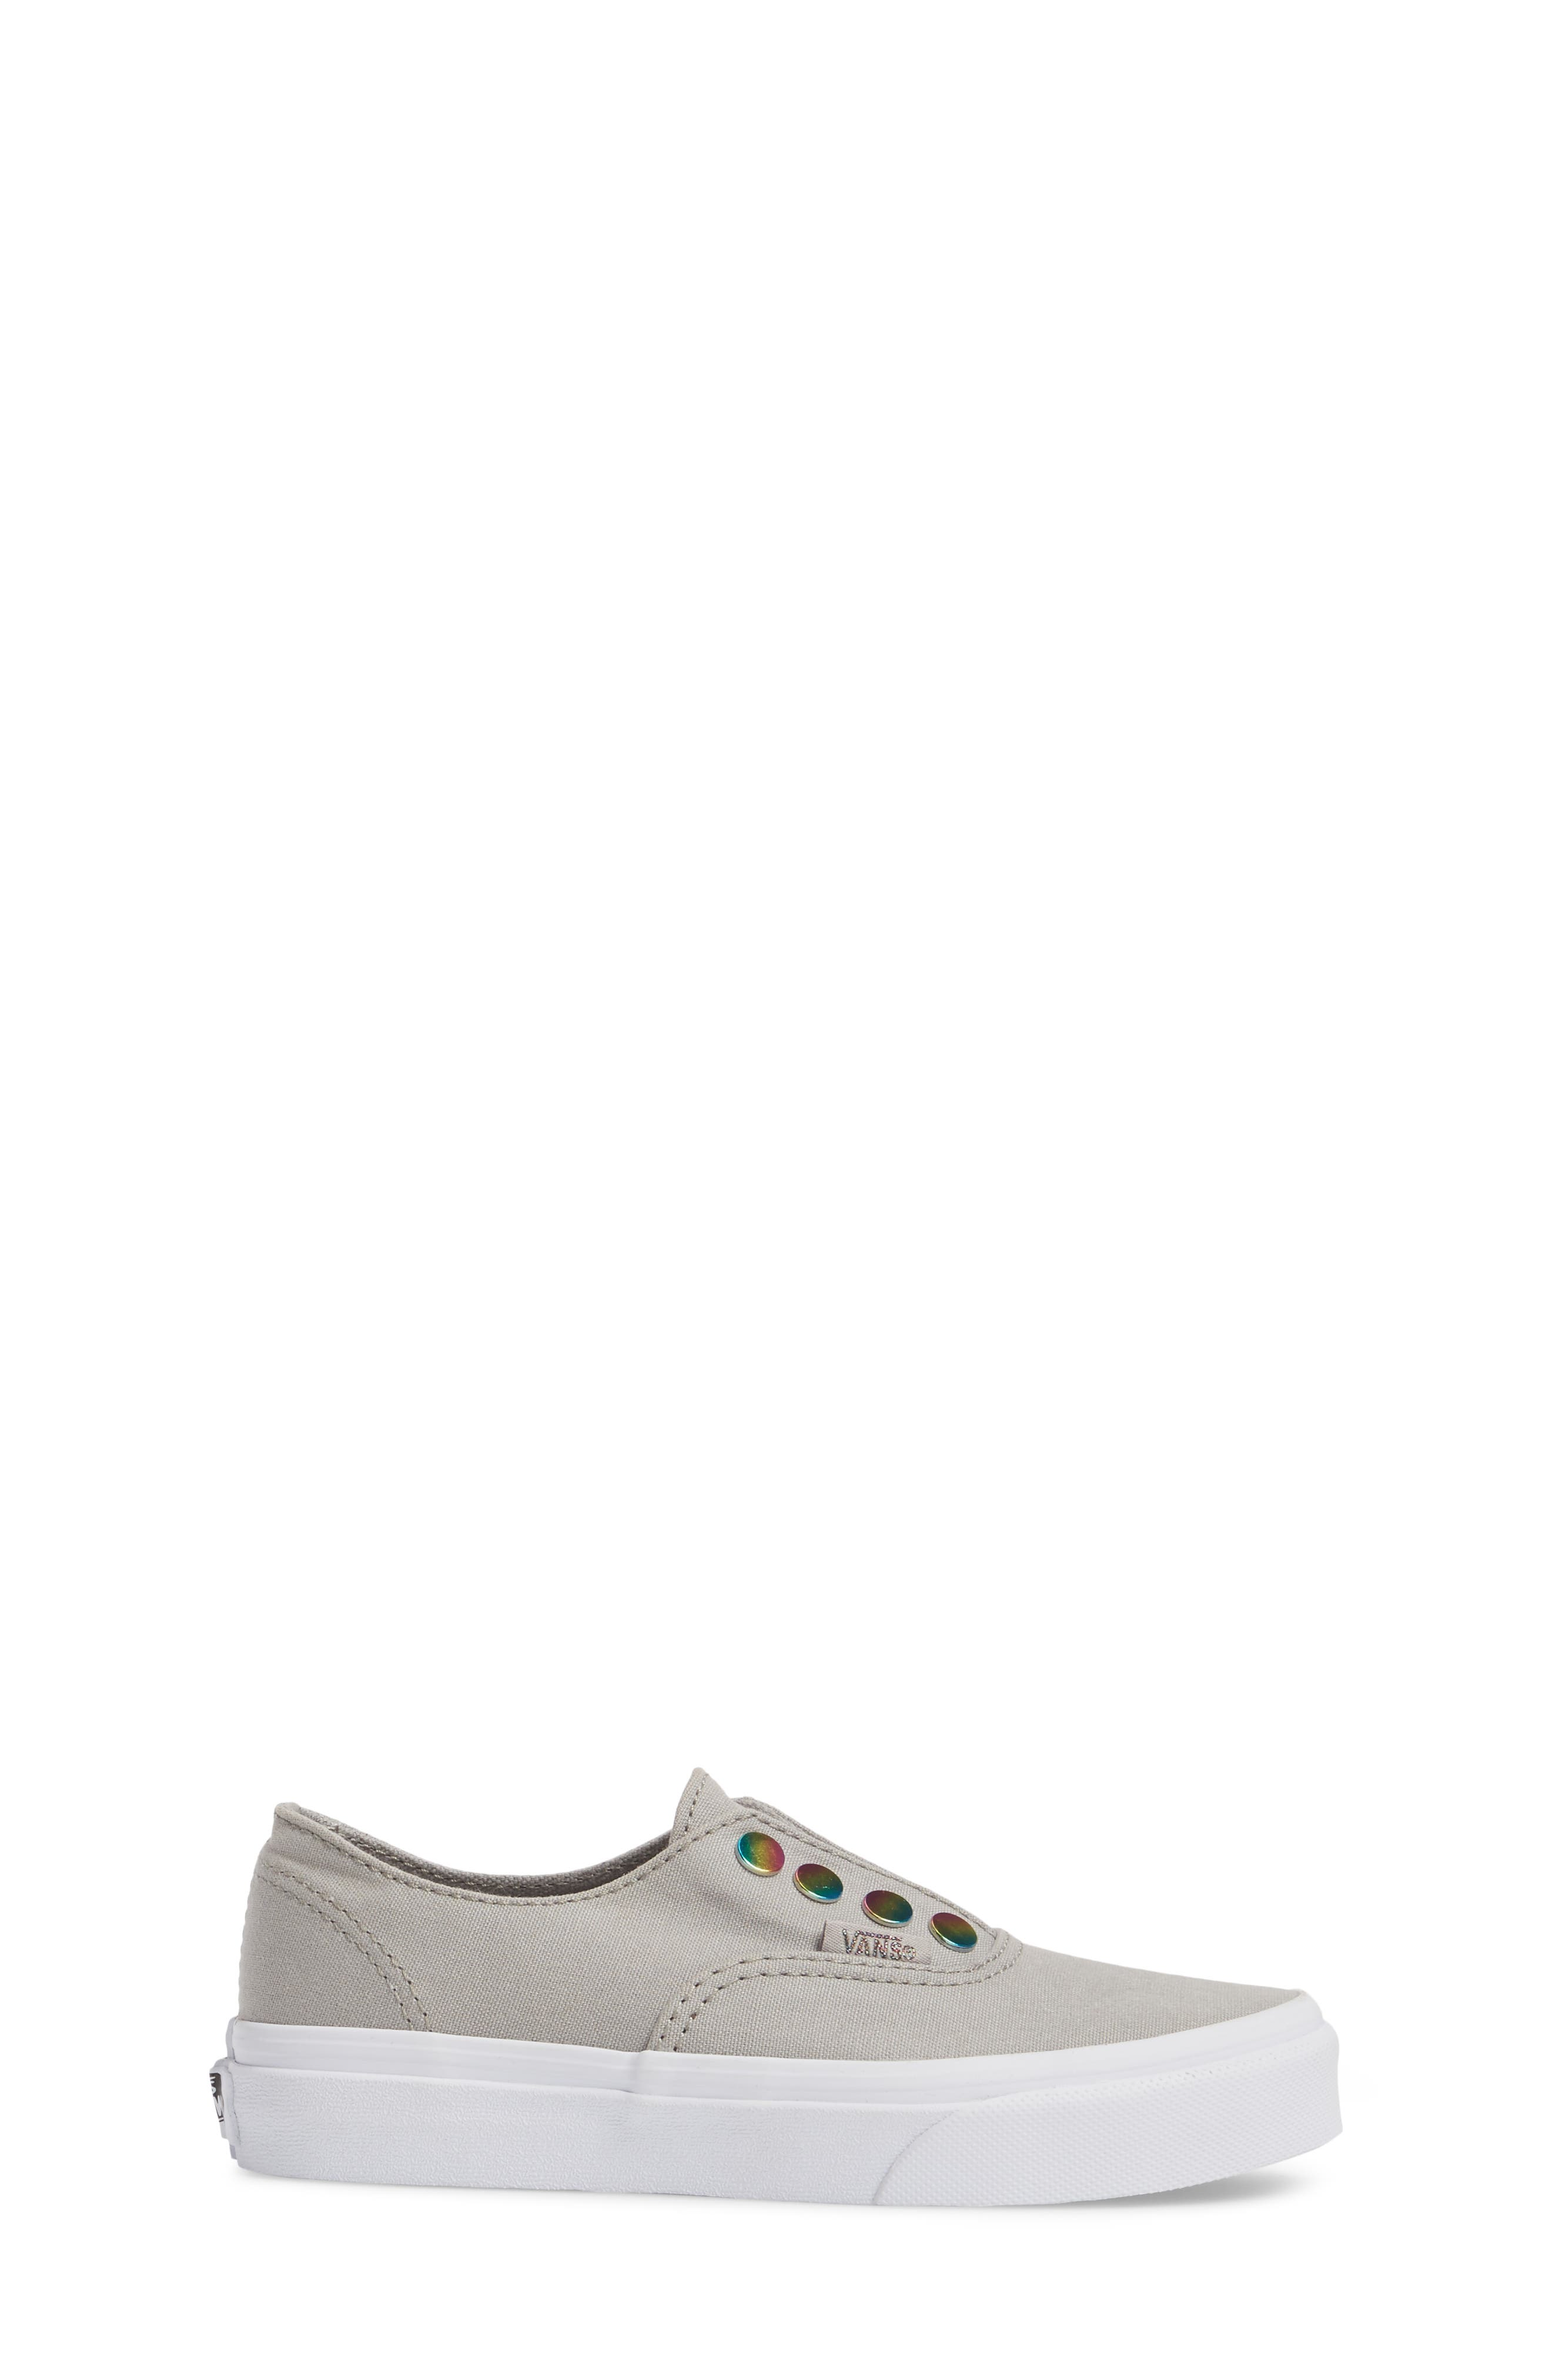 Authentic Gore Slip-On Sneaker,                             Alternate thumbnail 3, color,                             Drizzle/ Rainbow Eyelet